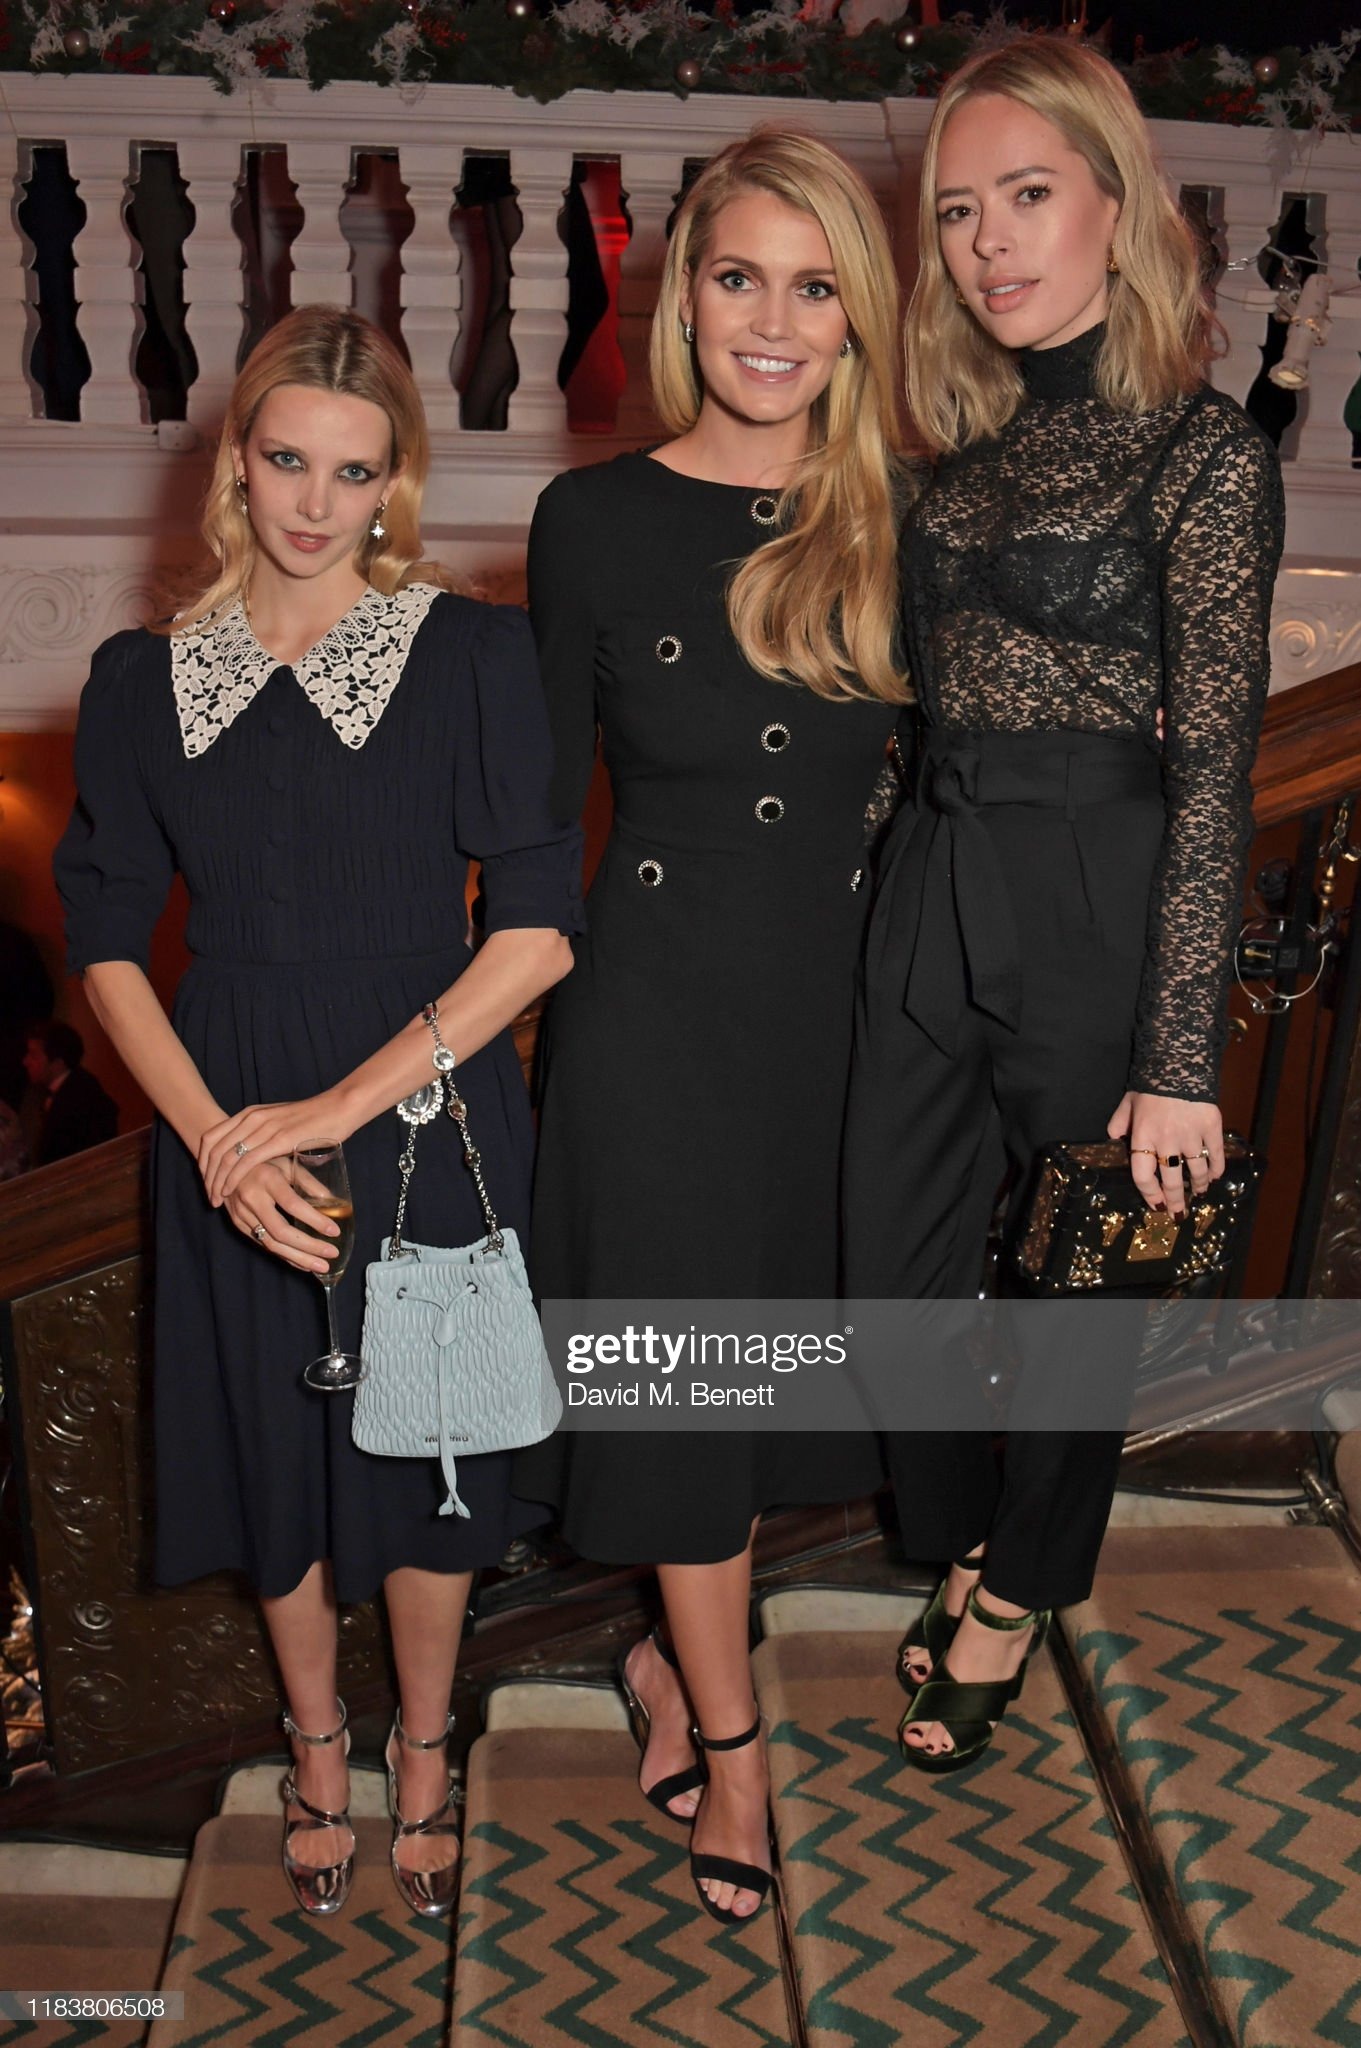 https://media.gettyimages.com/photos/greta-bellamacina-lady-kitty-spencer-and-tanya-burr-attend-the-launch-picture-id1183806508?s=2048x2048